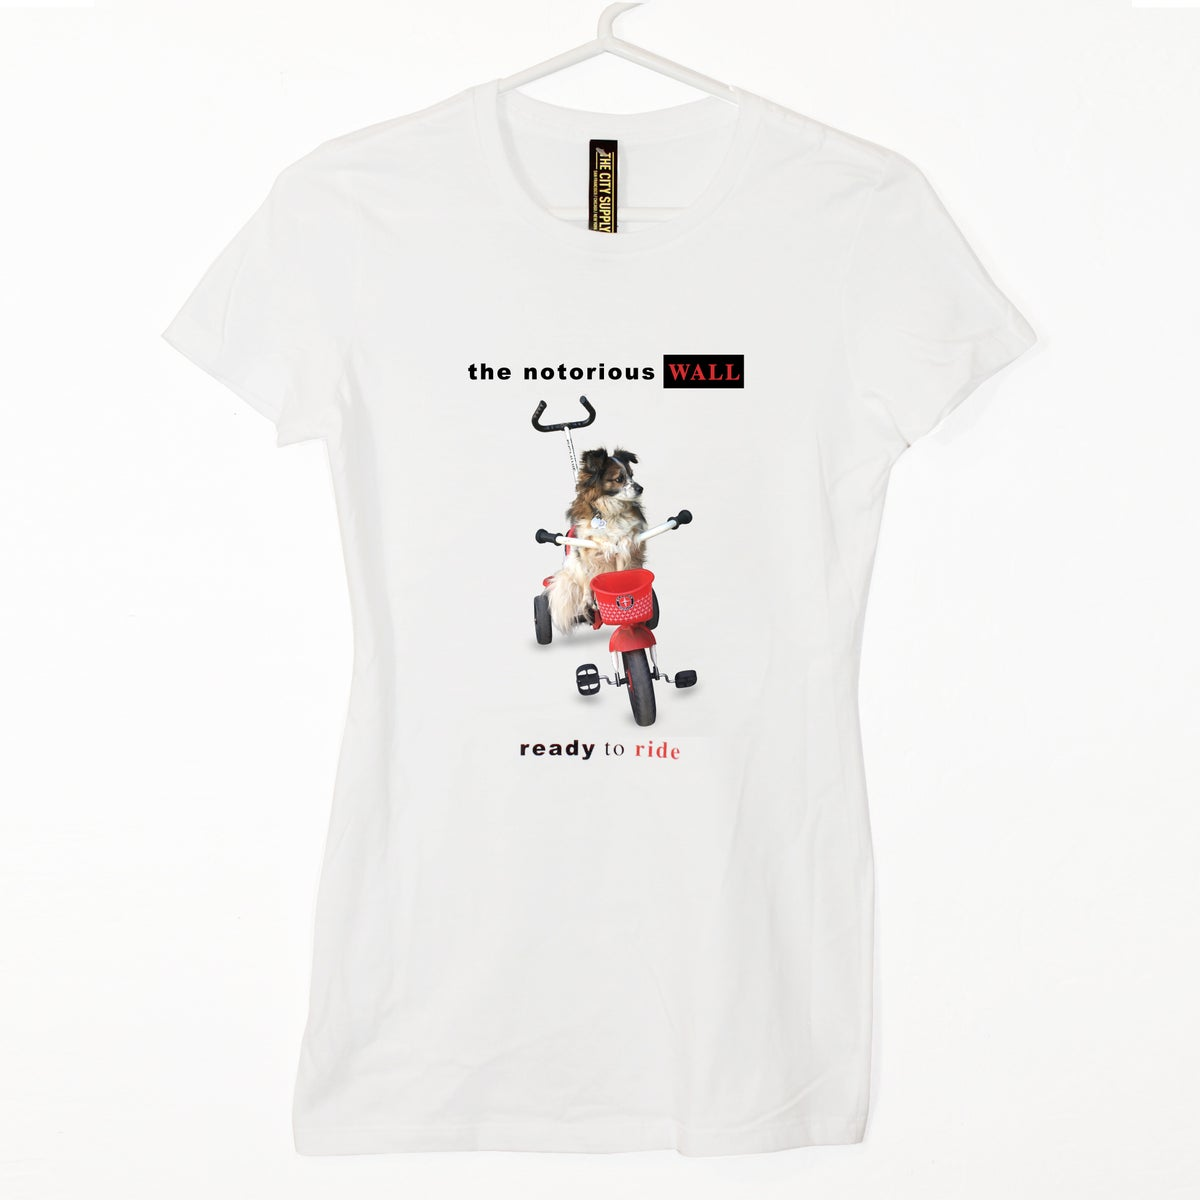 Image of $17 The Notorious Wall Tee